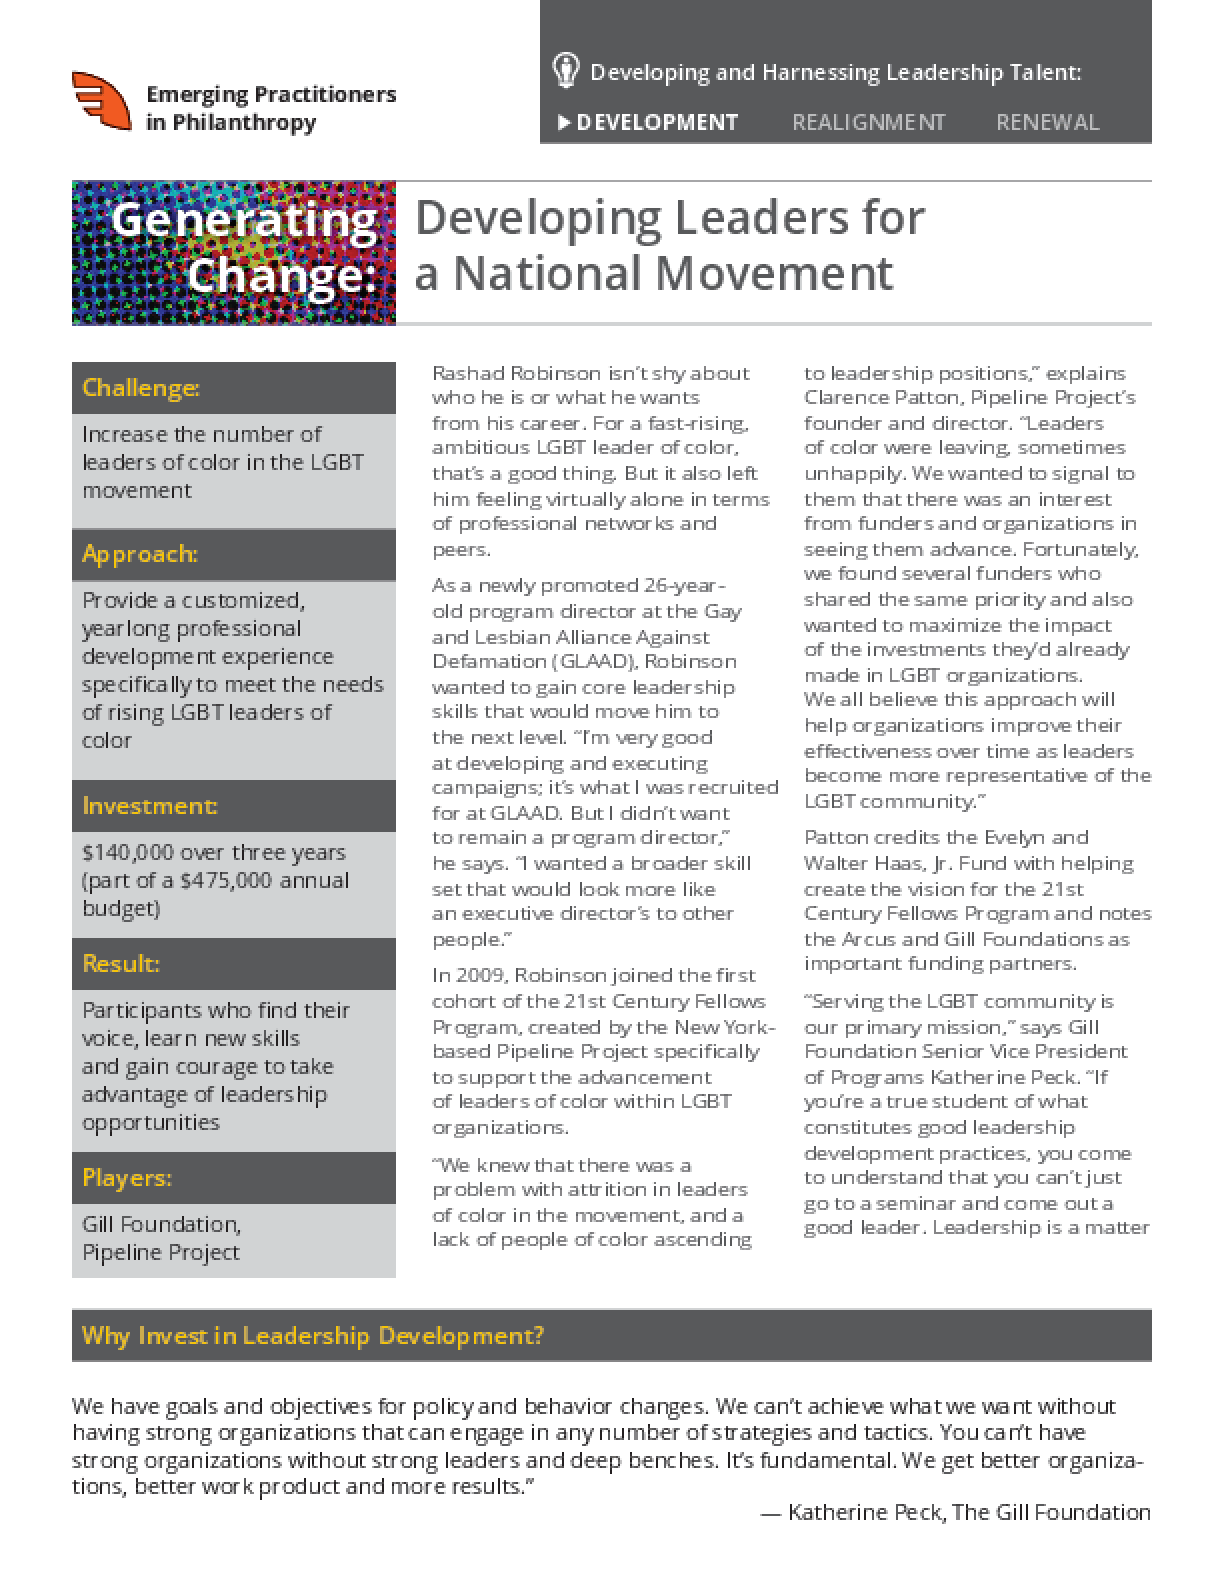 Generating Change: Developing Leaders for a National Movement